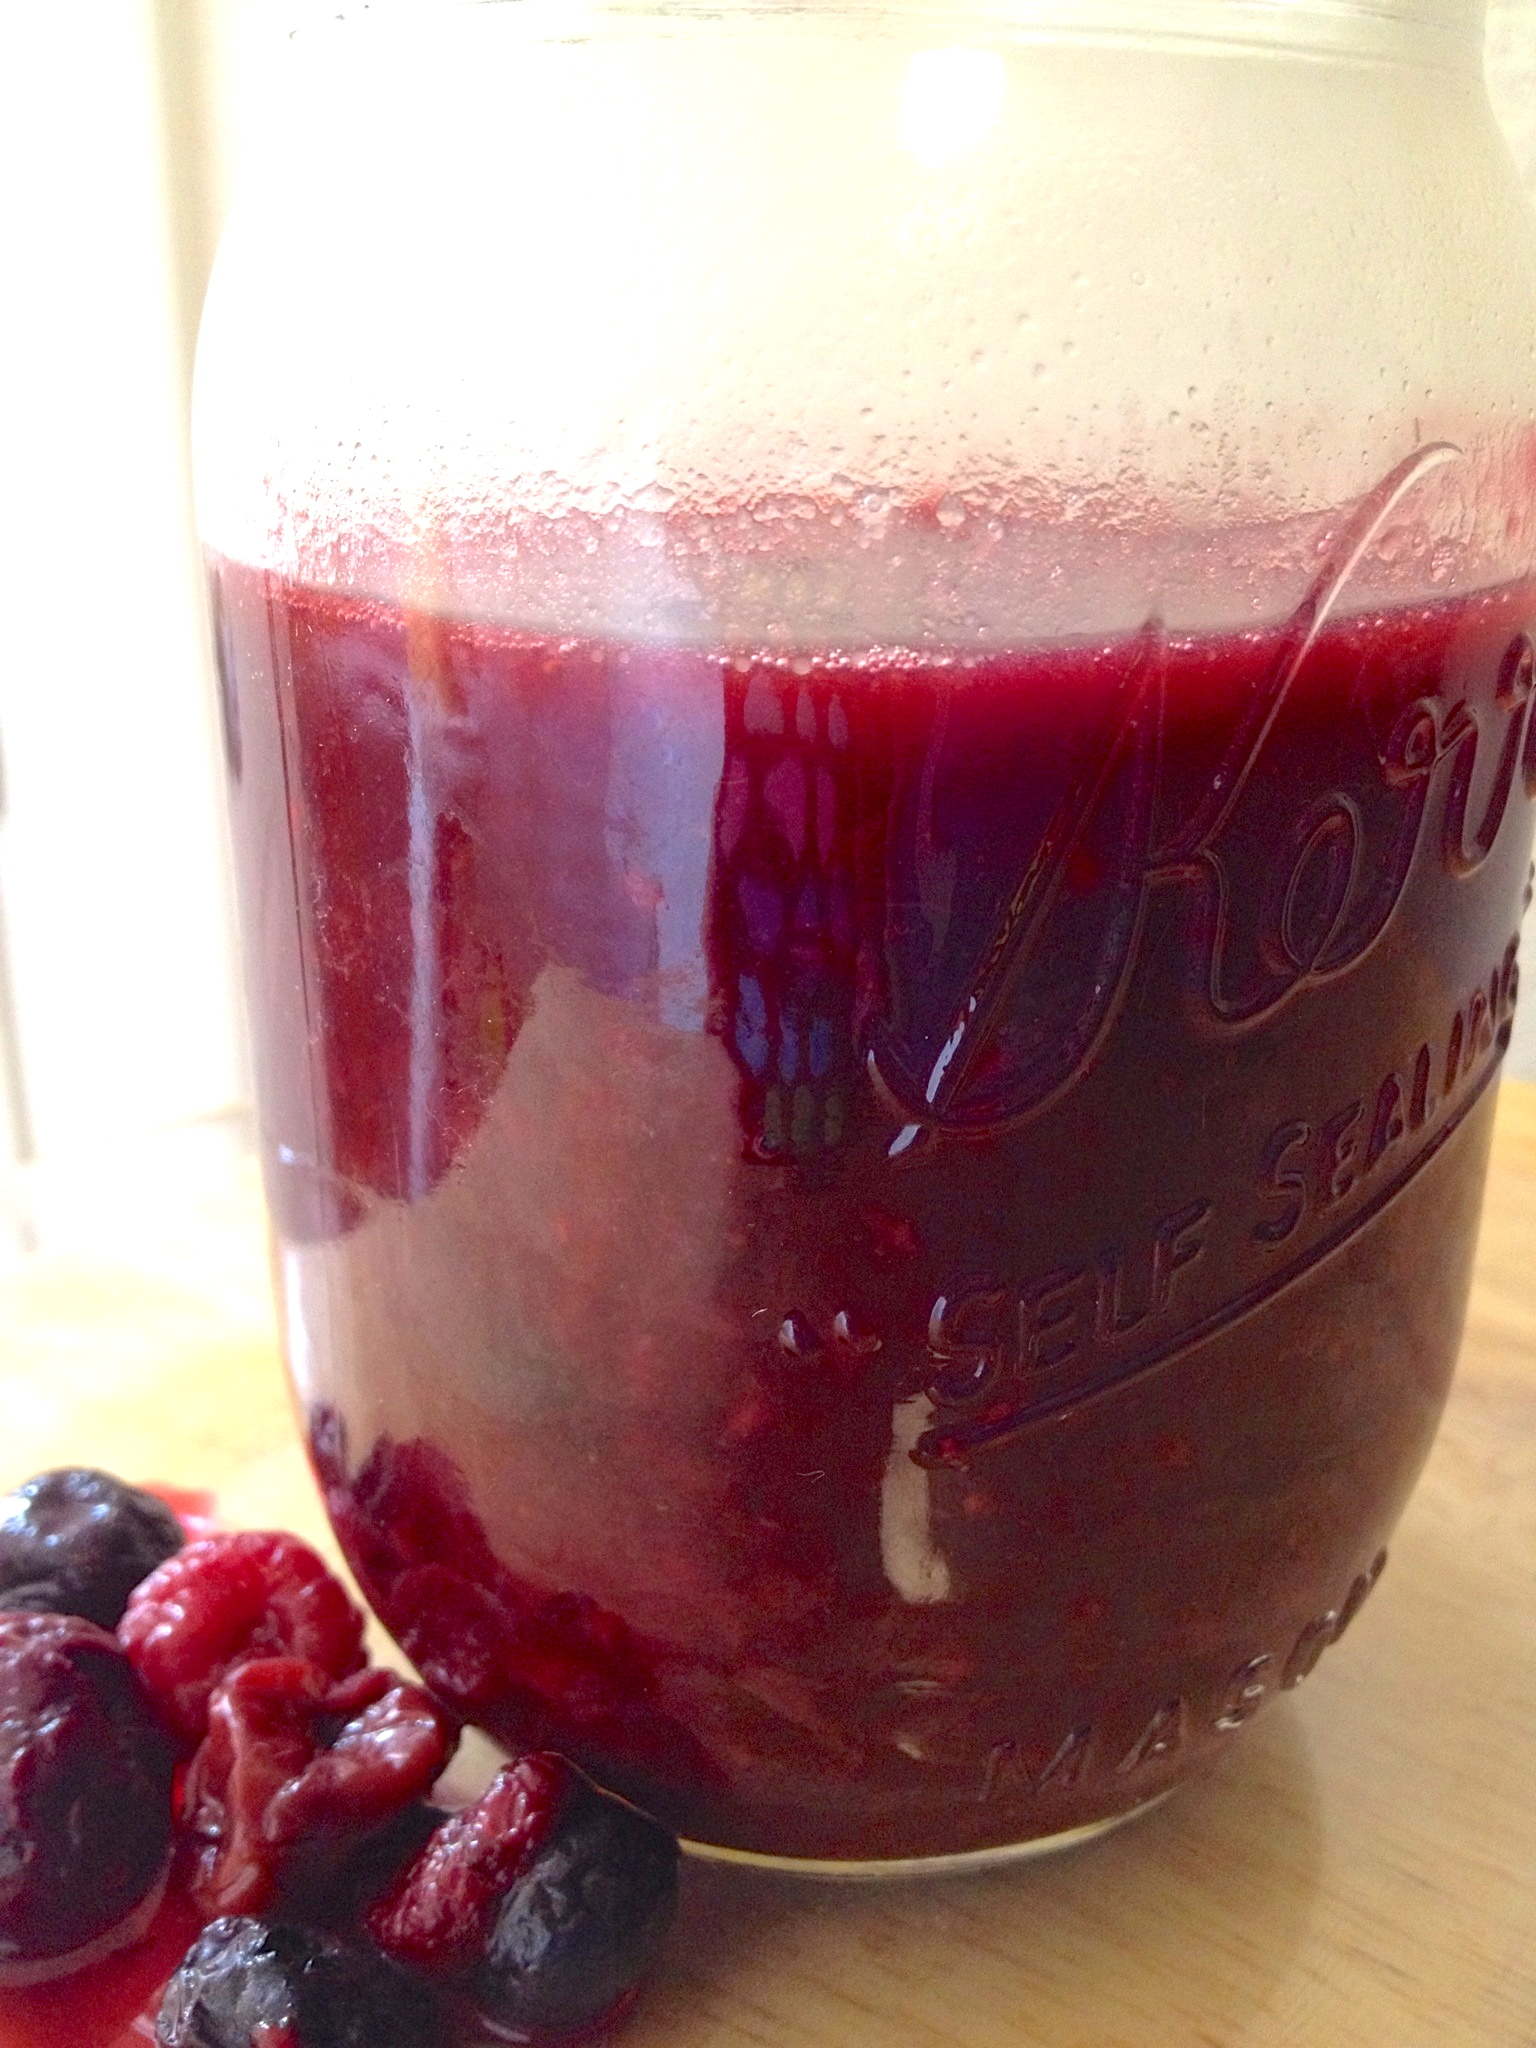 Berry Compote for Amish Friendship Bread by Paula Altenbach | friendshipbreadkitchen.com